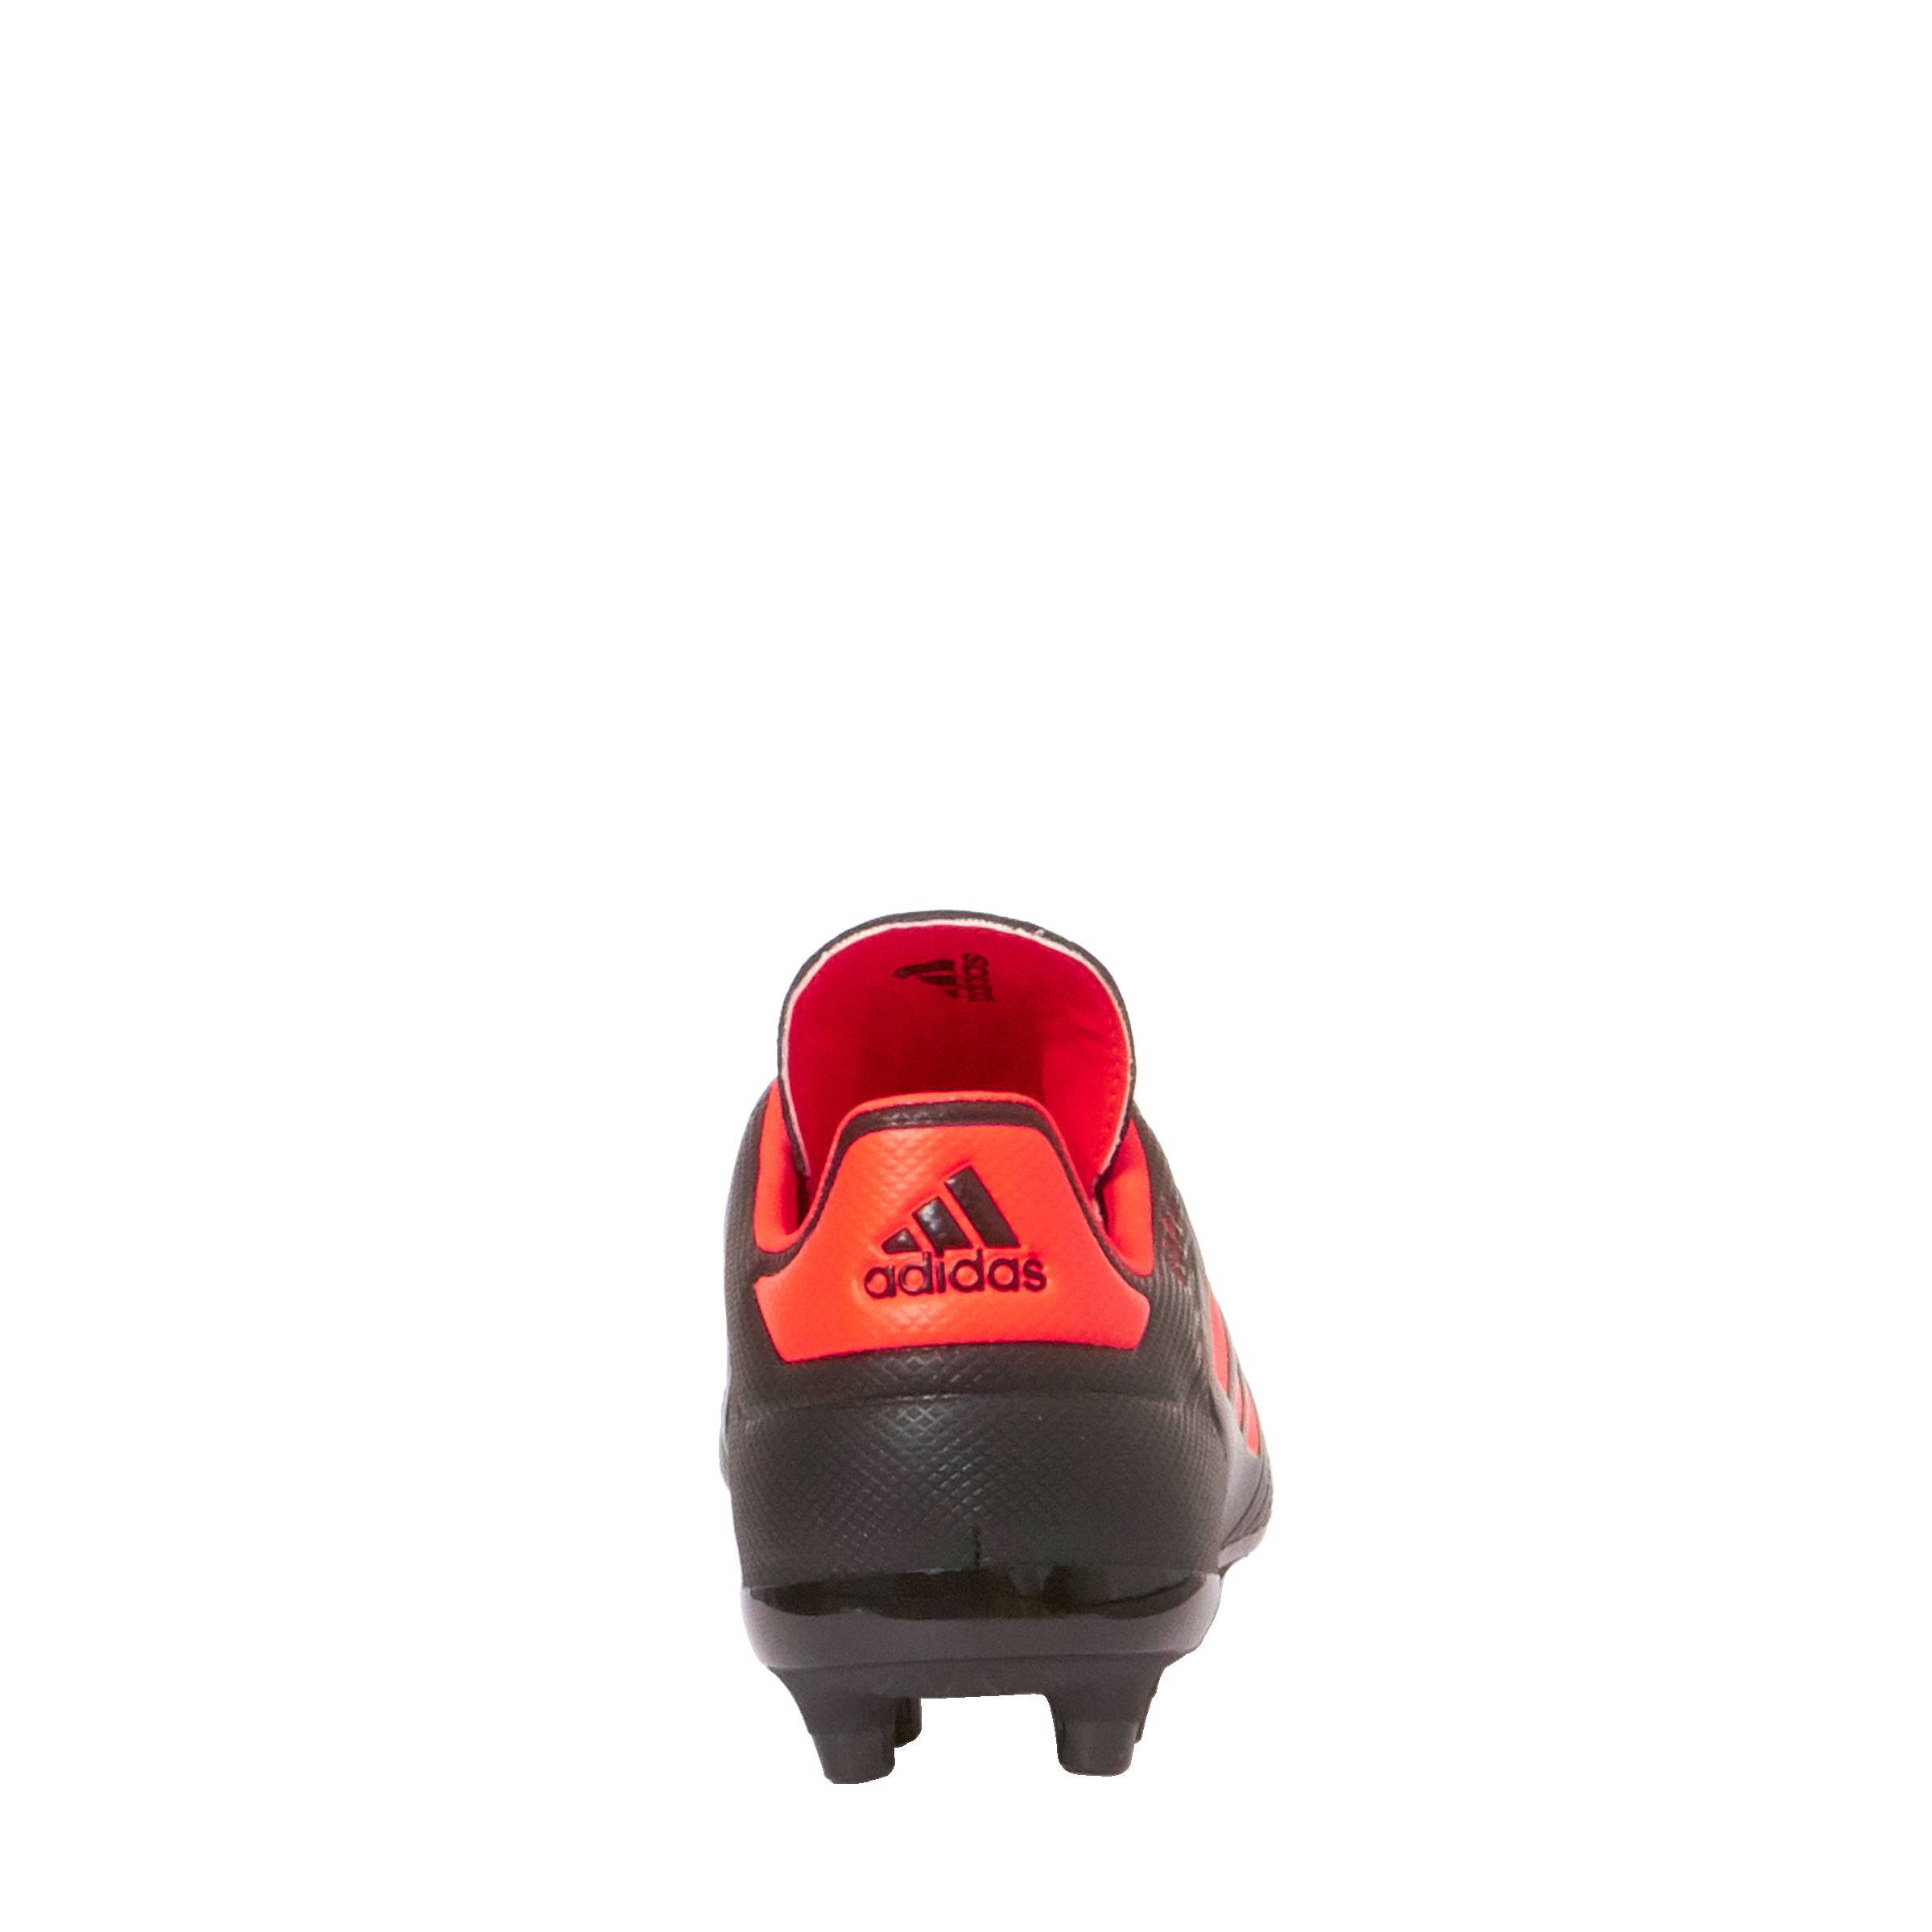 lowest price 4fcac 1c9f7 adidas performance Copa 17.3 FG voetbalschoenen  wehkamp